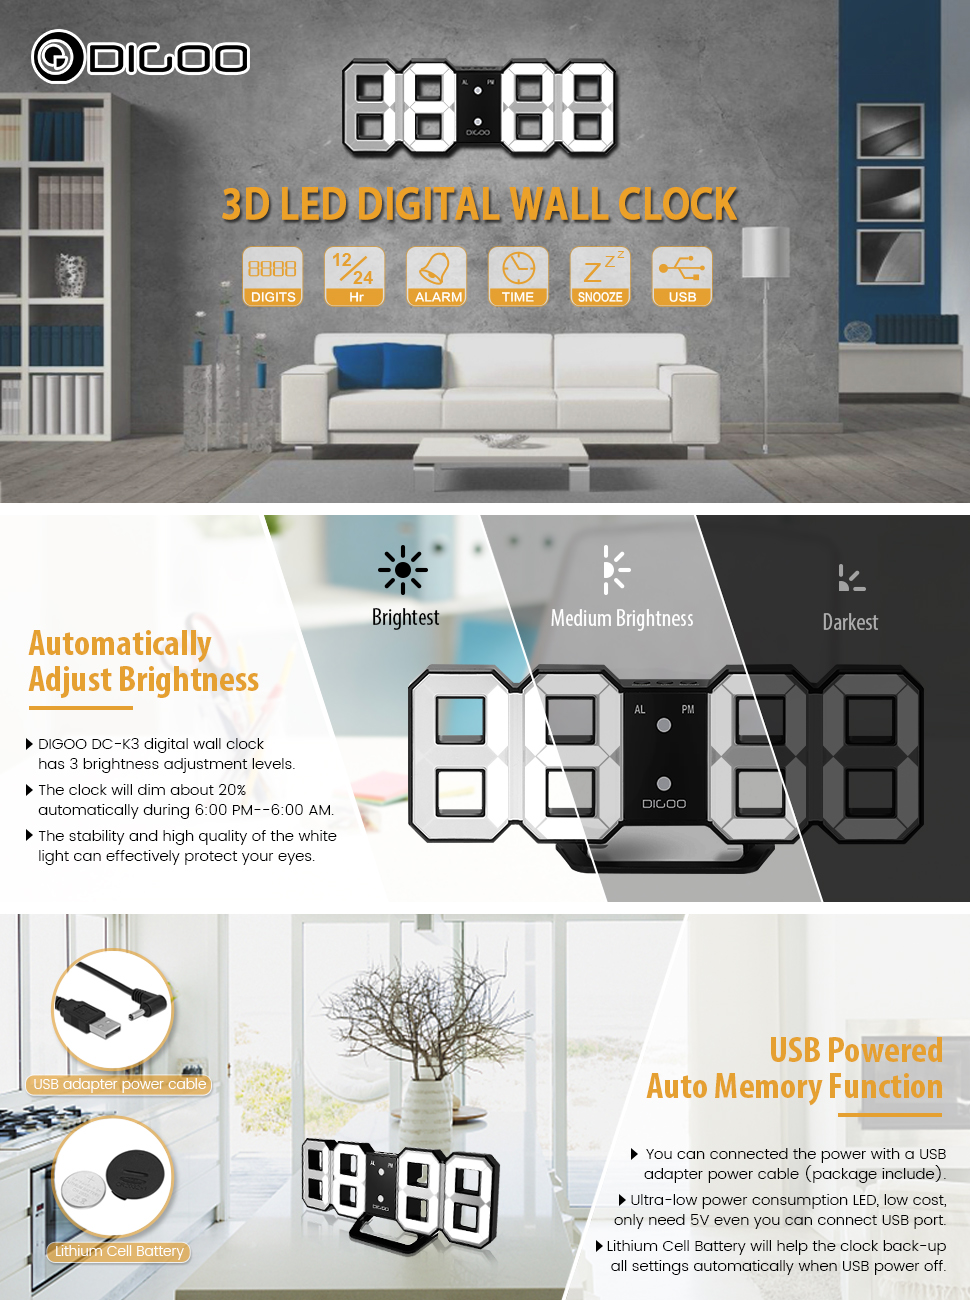 Amazon 3d led digital wall alarm clockdigoo dc k3 multi digoo dc k3 3d led digital multi function digital alarm clock wall alarm clock amipublicfo Images